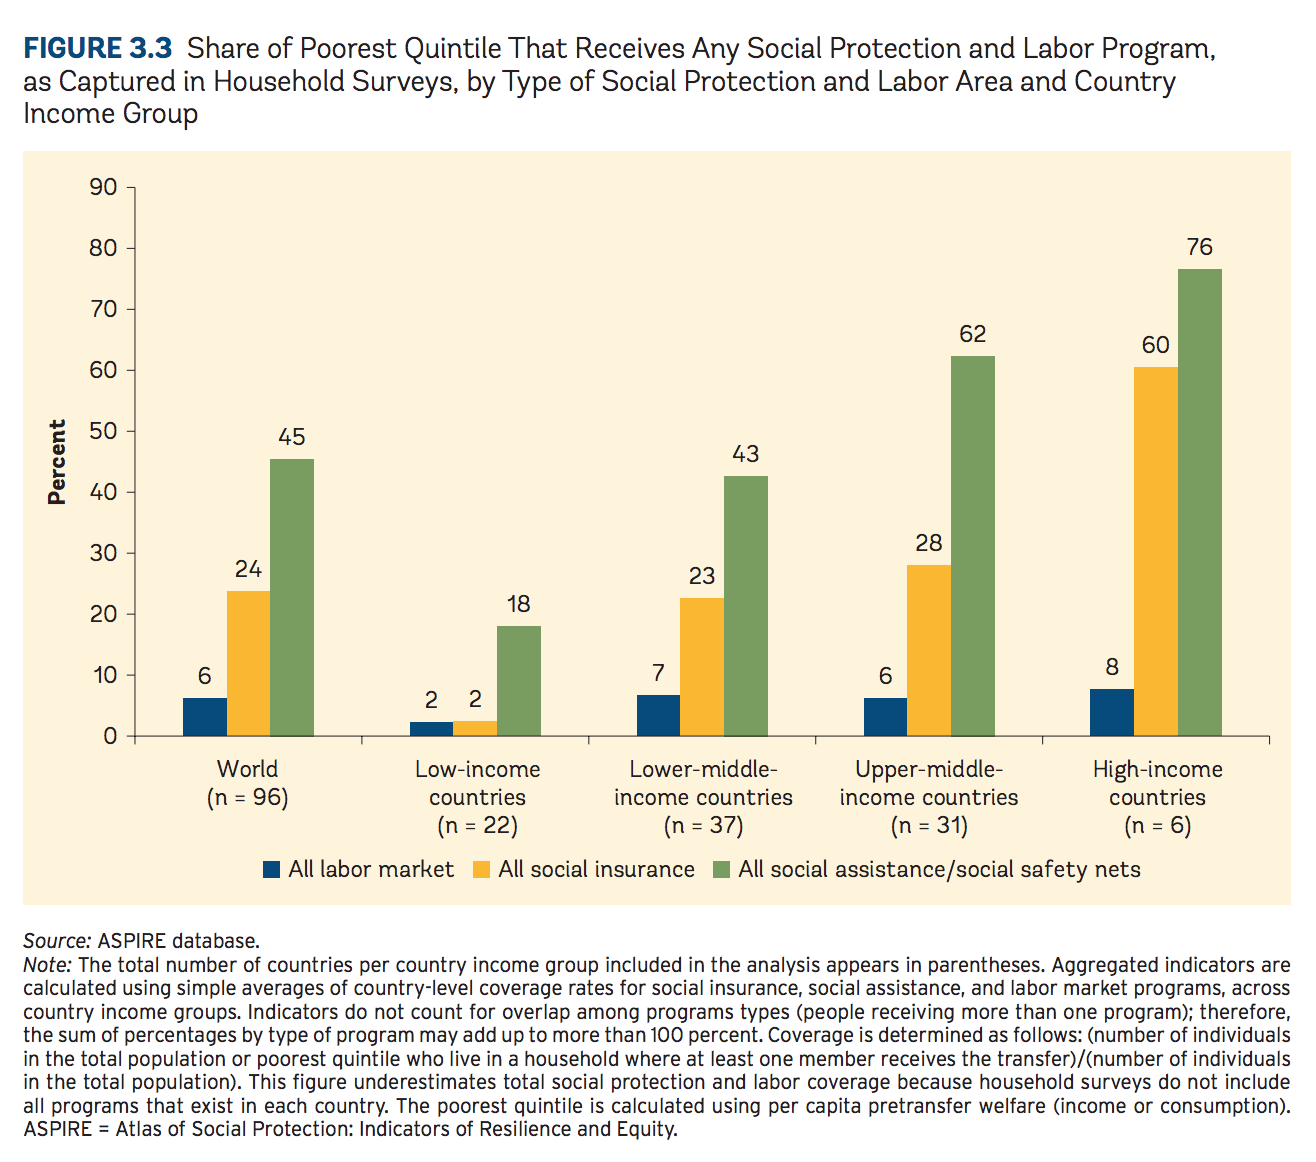 Share of poorest quintile that receives any social protection and labor program, as captured in household surveys, by type of social protection and labor area and country income group